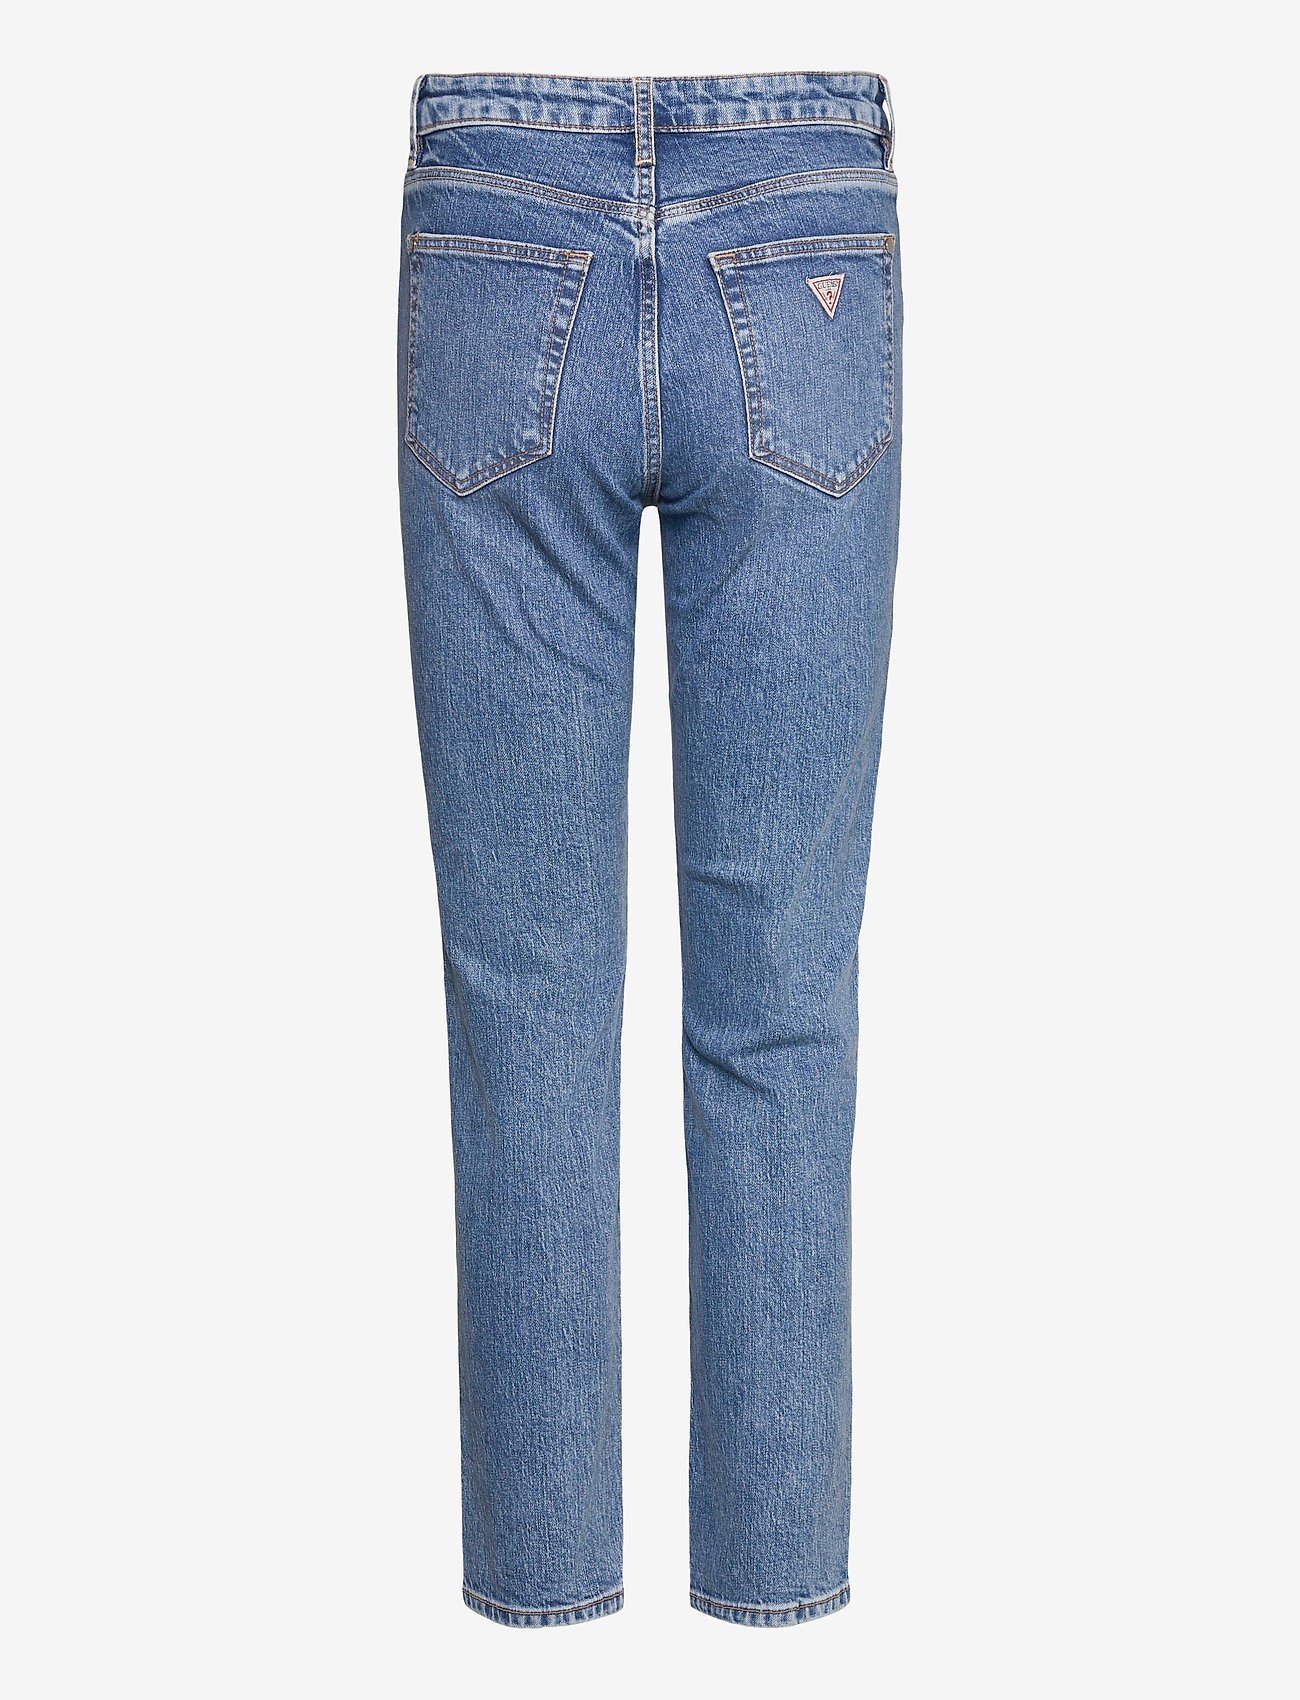 GUESS Jeans - GIRLY SKINNY - straight jeans - spitafield - 1